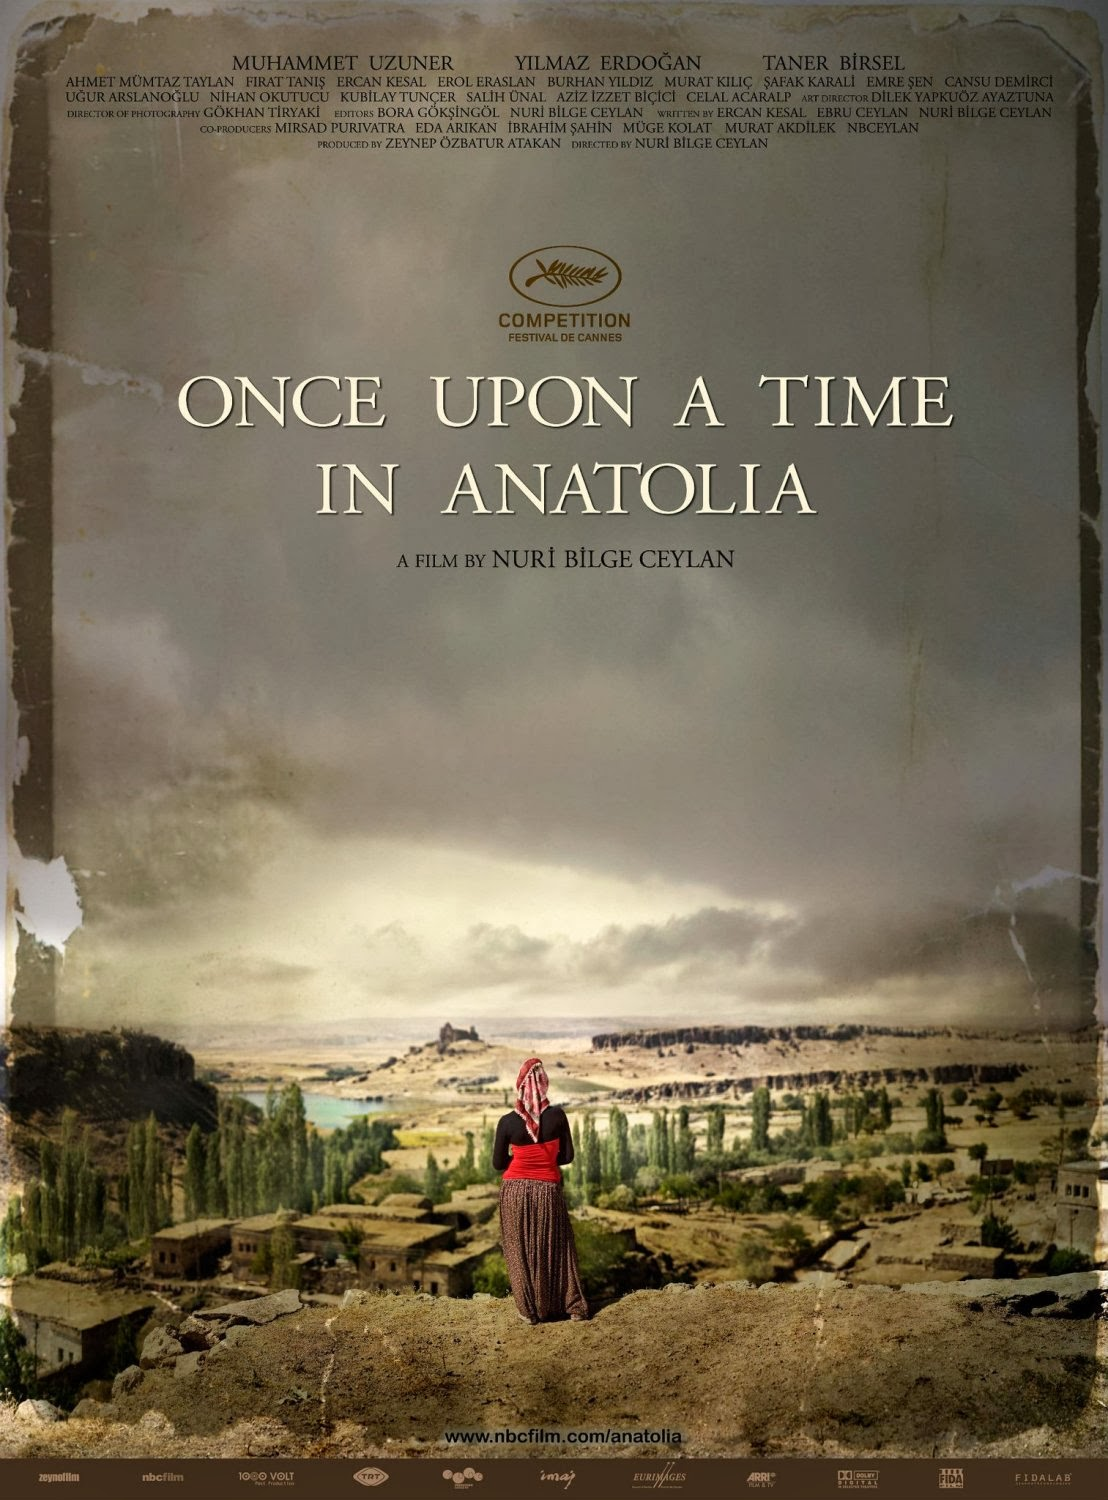 once upon a time analysis Once upon a time analysis cloze version - free download as word doc (doc), pdf file (pdf), text file (txt) or read online for free an analysis of gabriel okara's 'once upon a time' for.